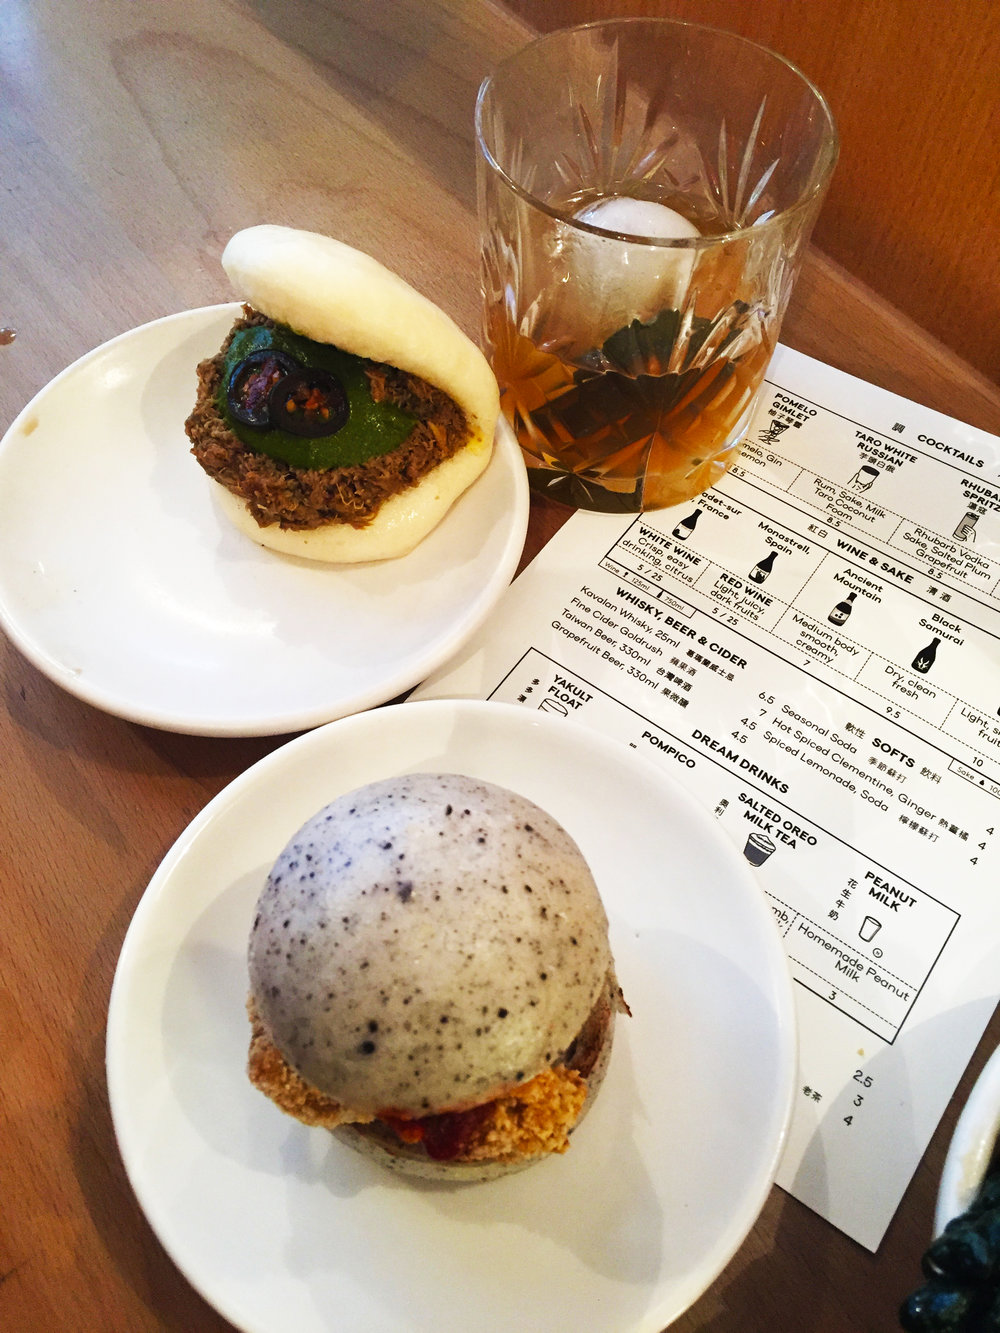 Delicious bao buns and a tasty cocktail at Bao Soho